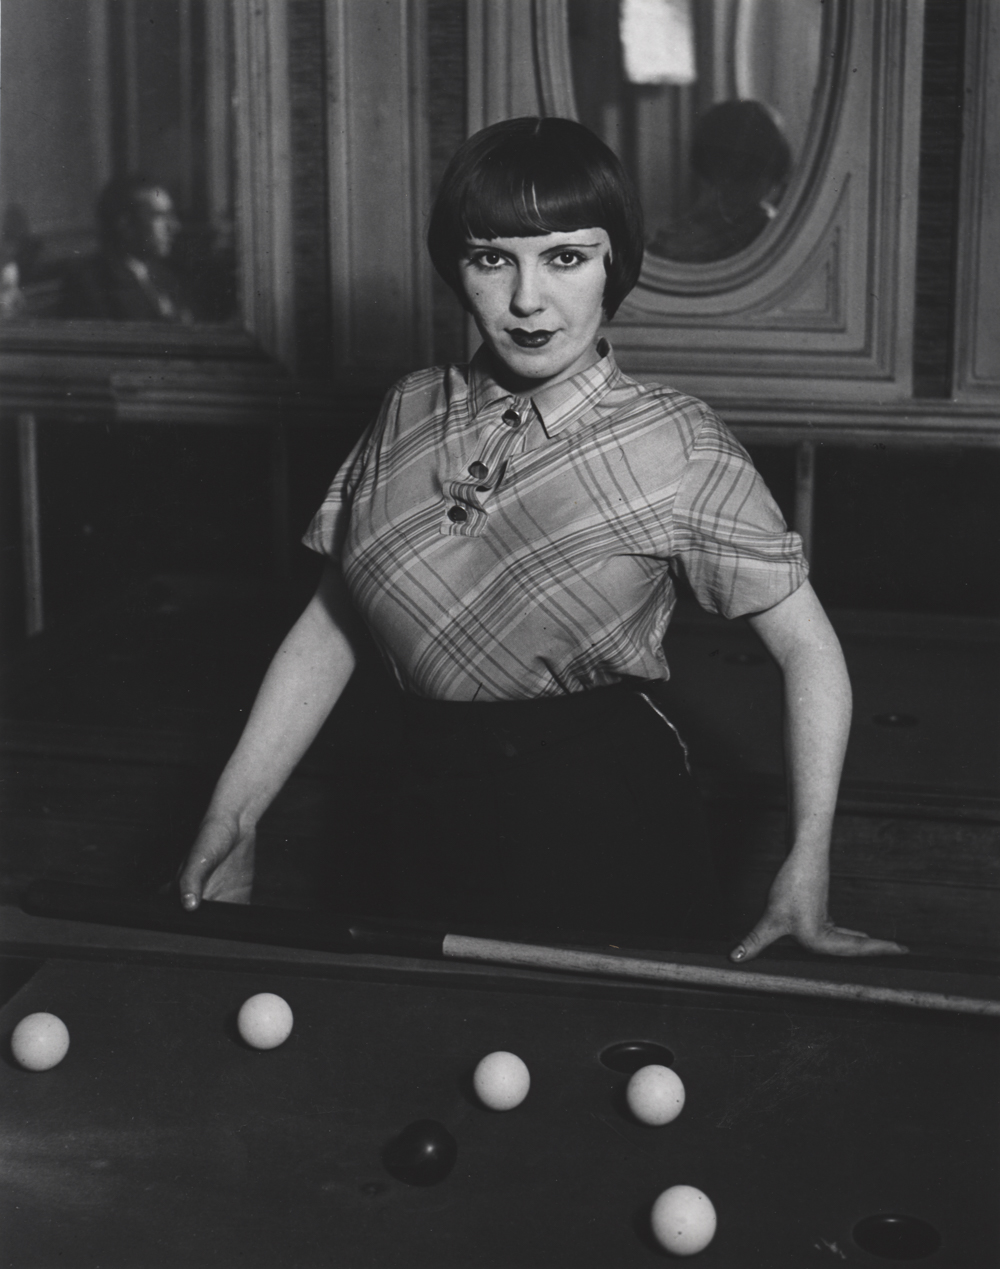 BRASSAI Girl Playing Russian Billiards, Montmartre, Paris, 1933/1973